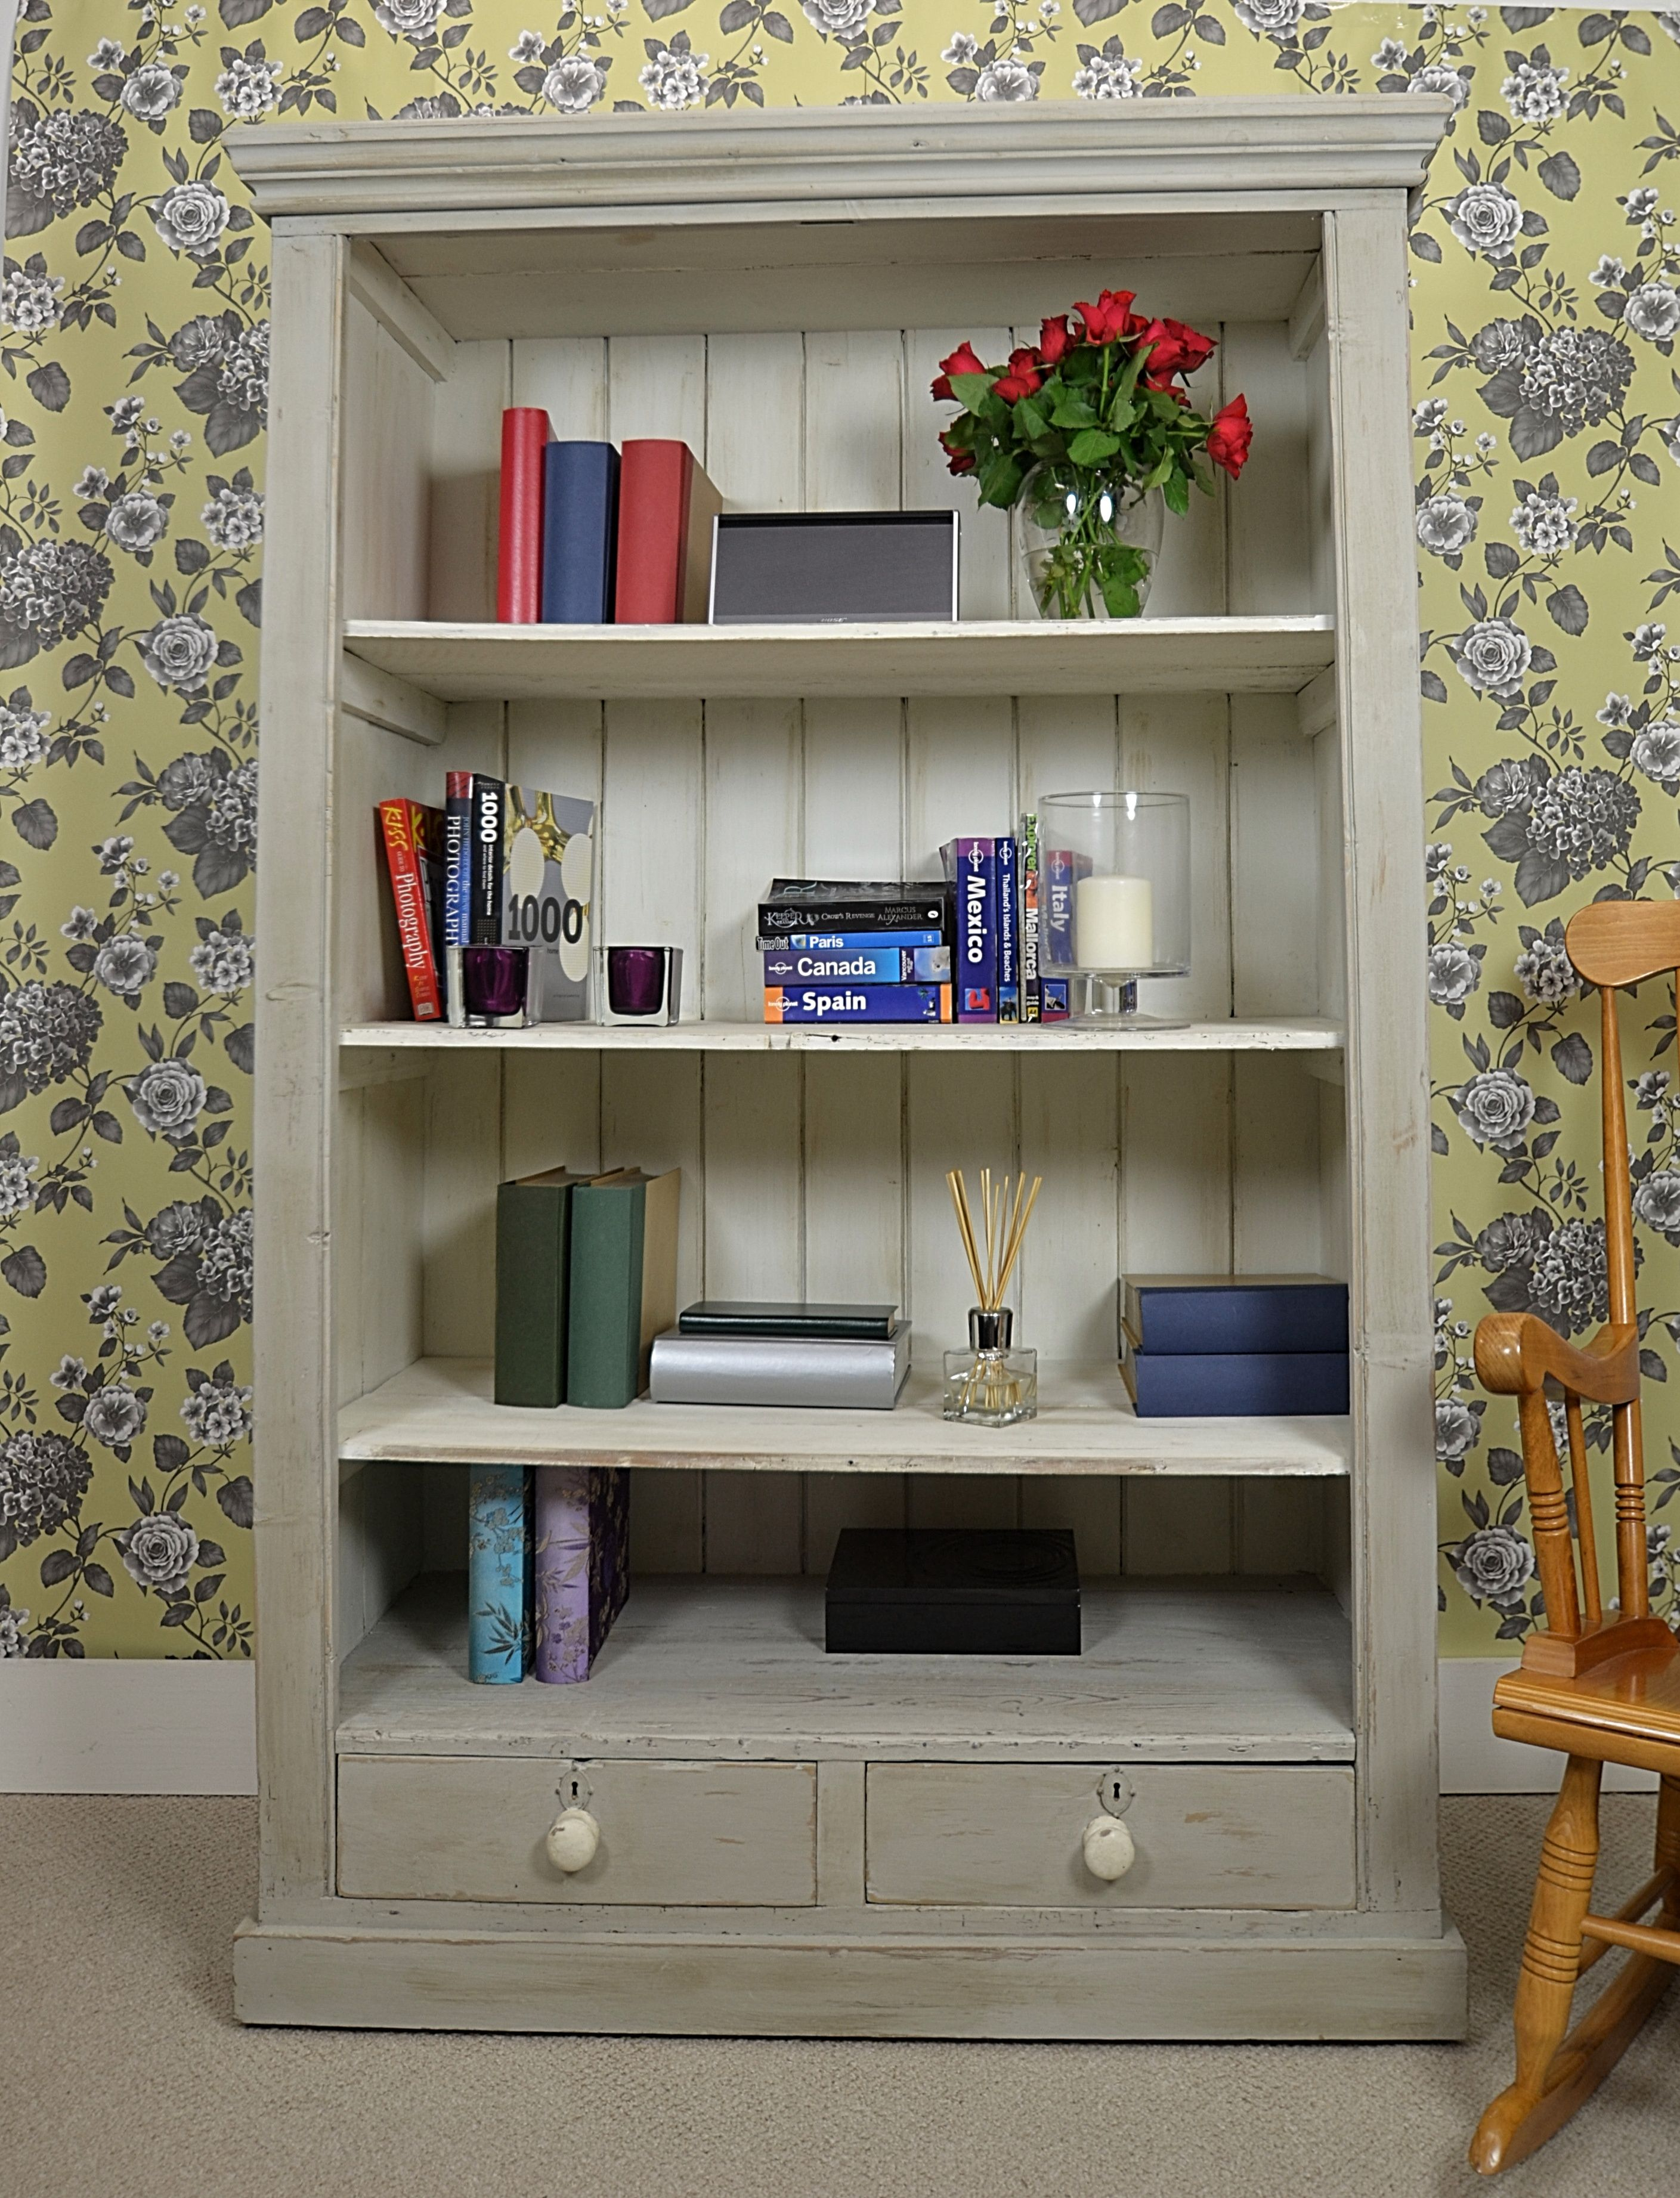 white wall chic wallpaper linnlive designs shabby pattern natural various com bookcase bookshelf itm feature images